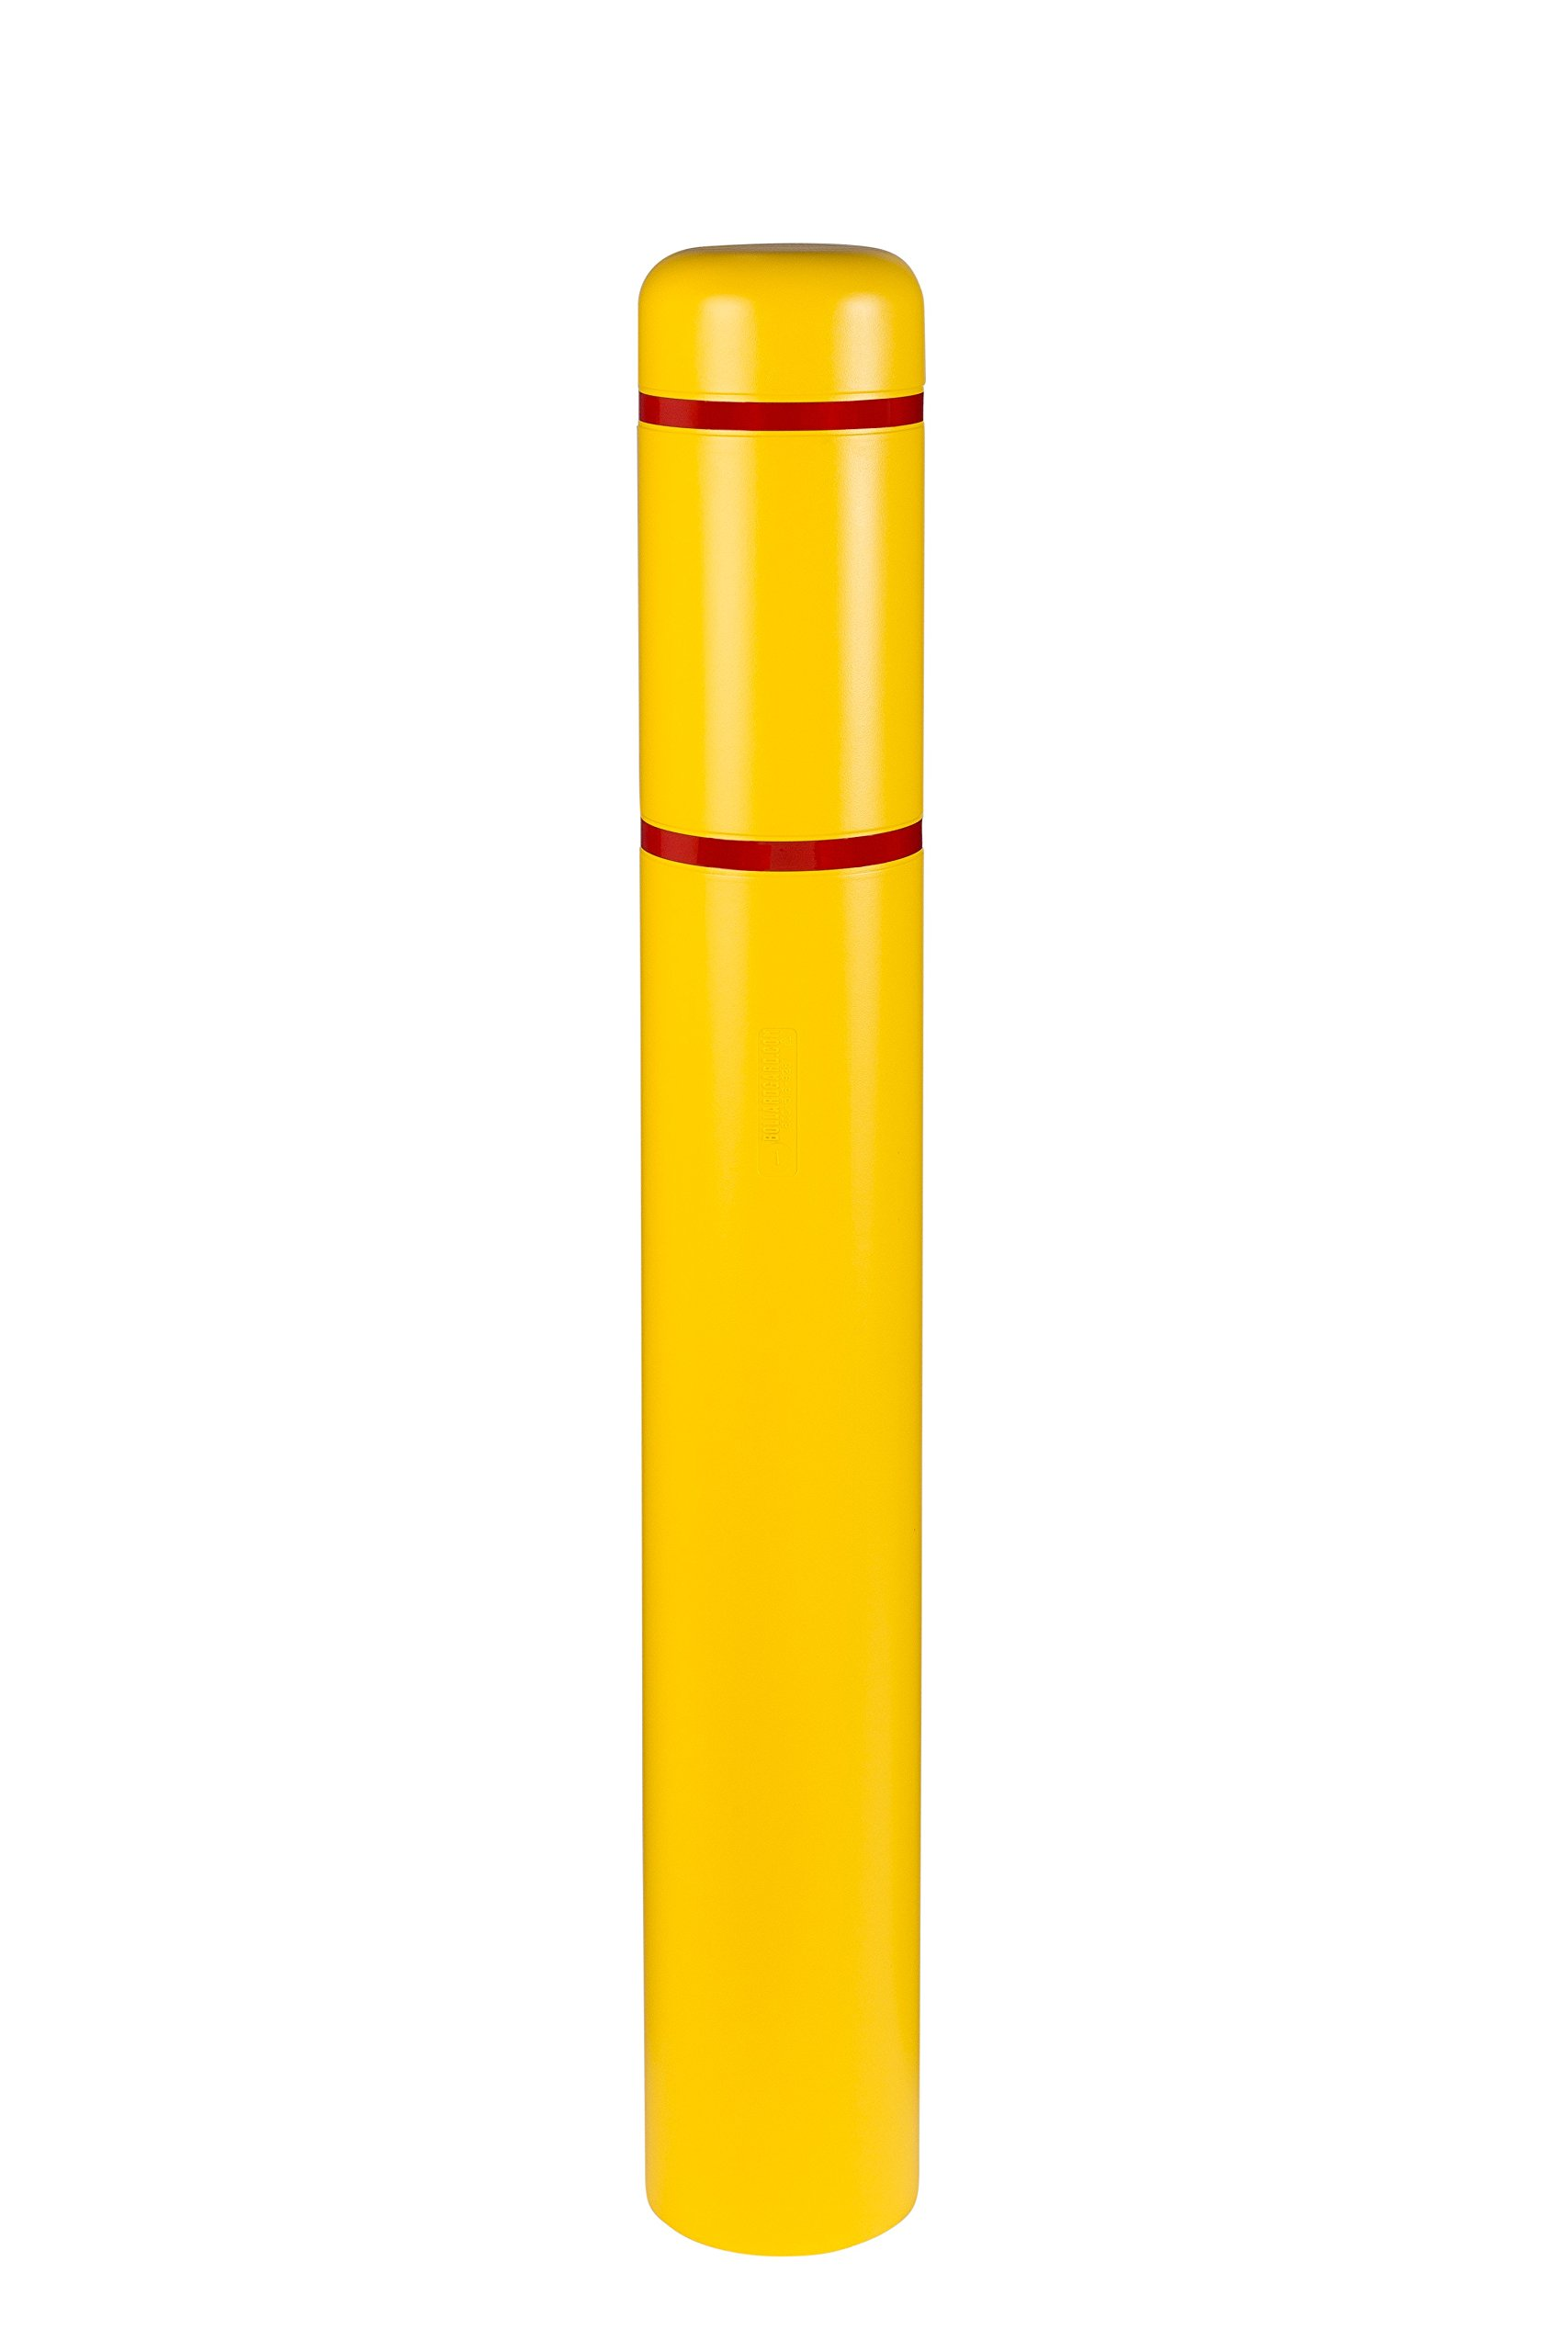 Innoplast 7'' x 52'' (7.1'' ID) Bollard Cover Yellow with Red Reflective by Innoplast (Image #2)